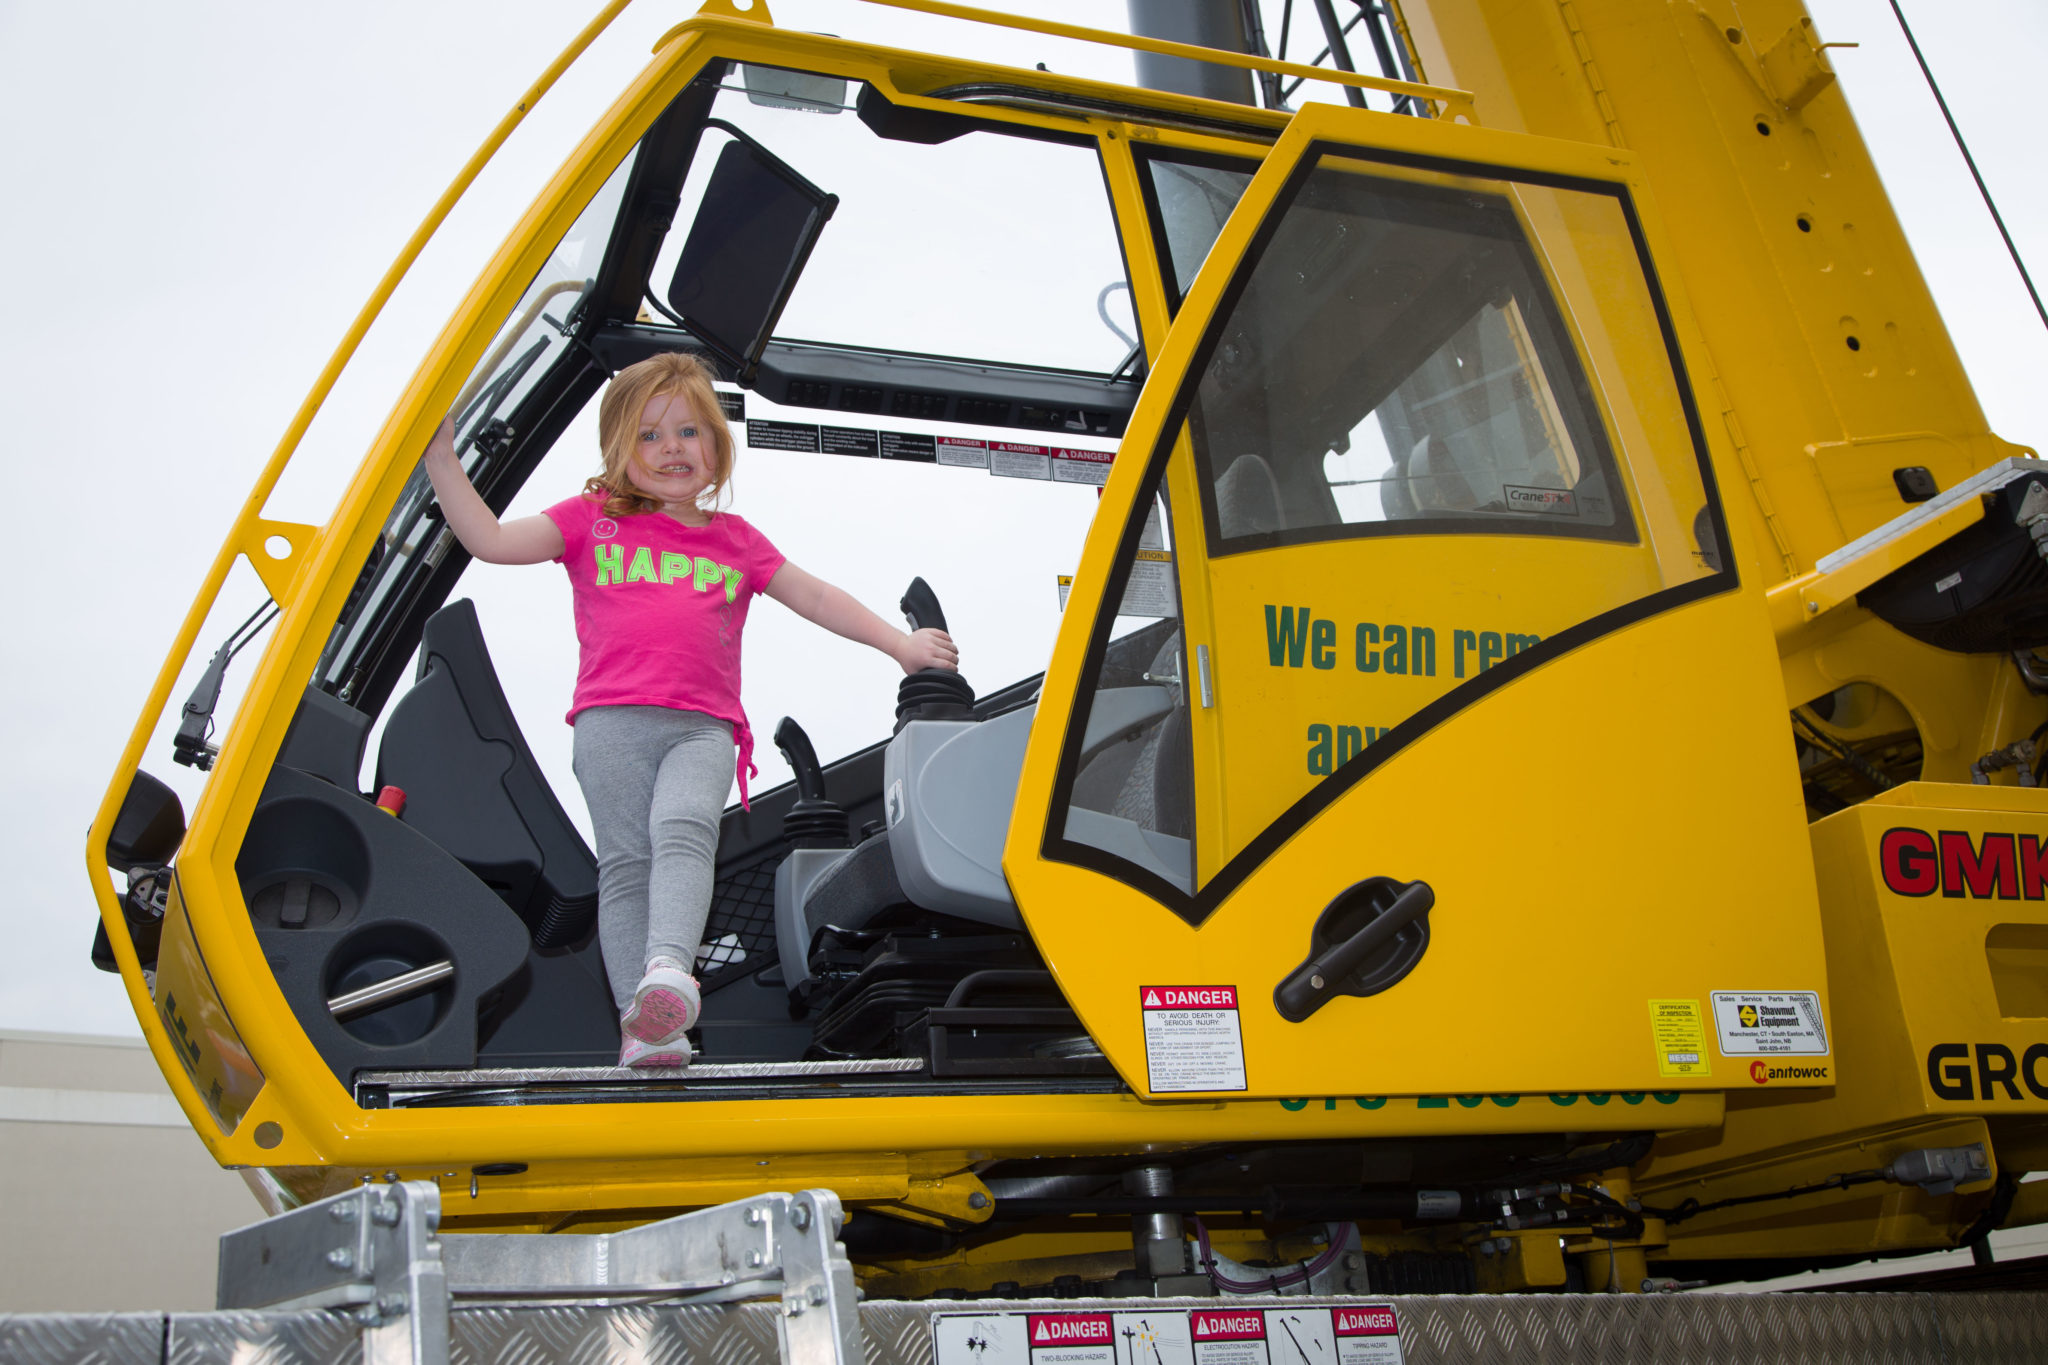 Auburn Mall hosts touch a truck on september 23, 2017!